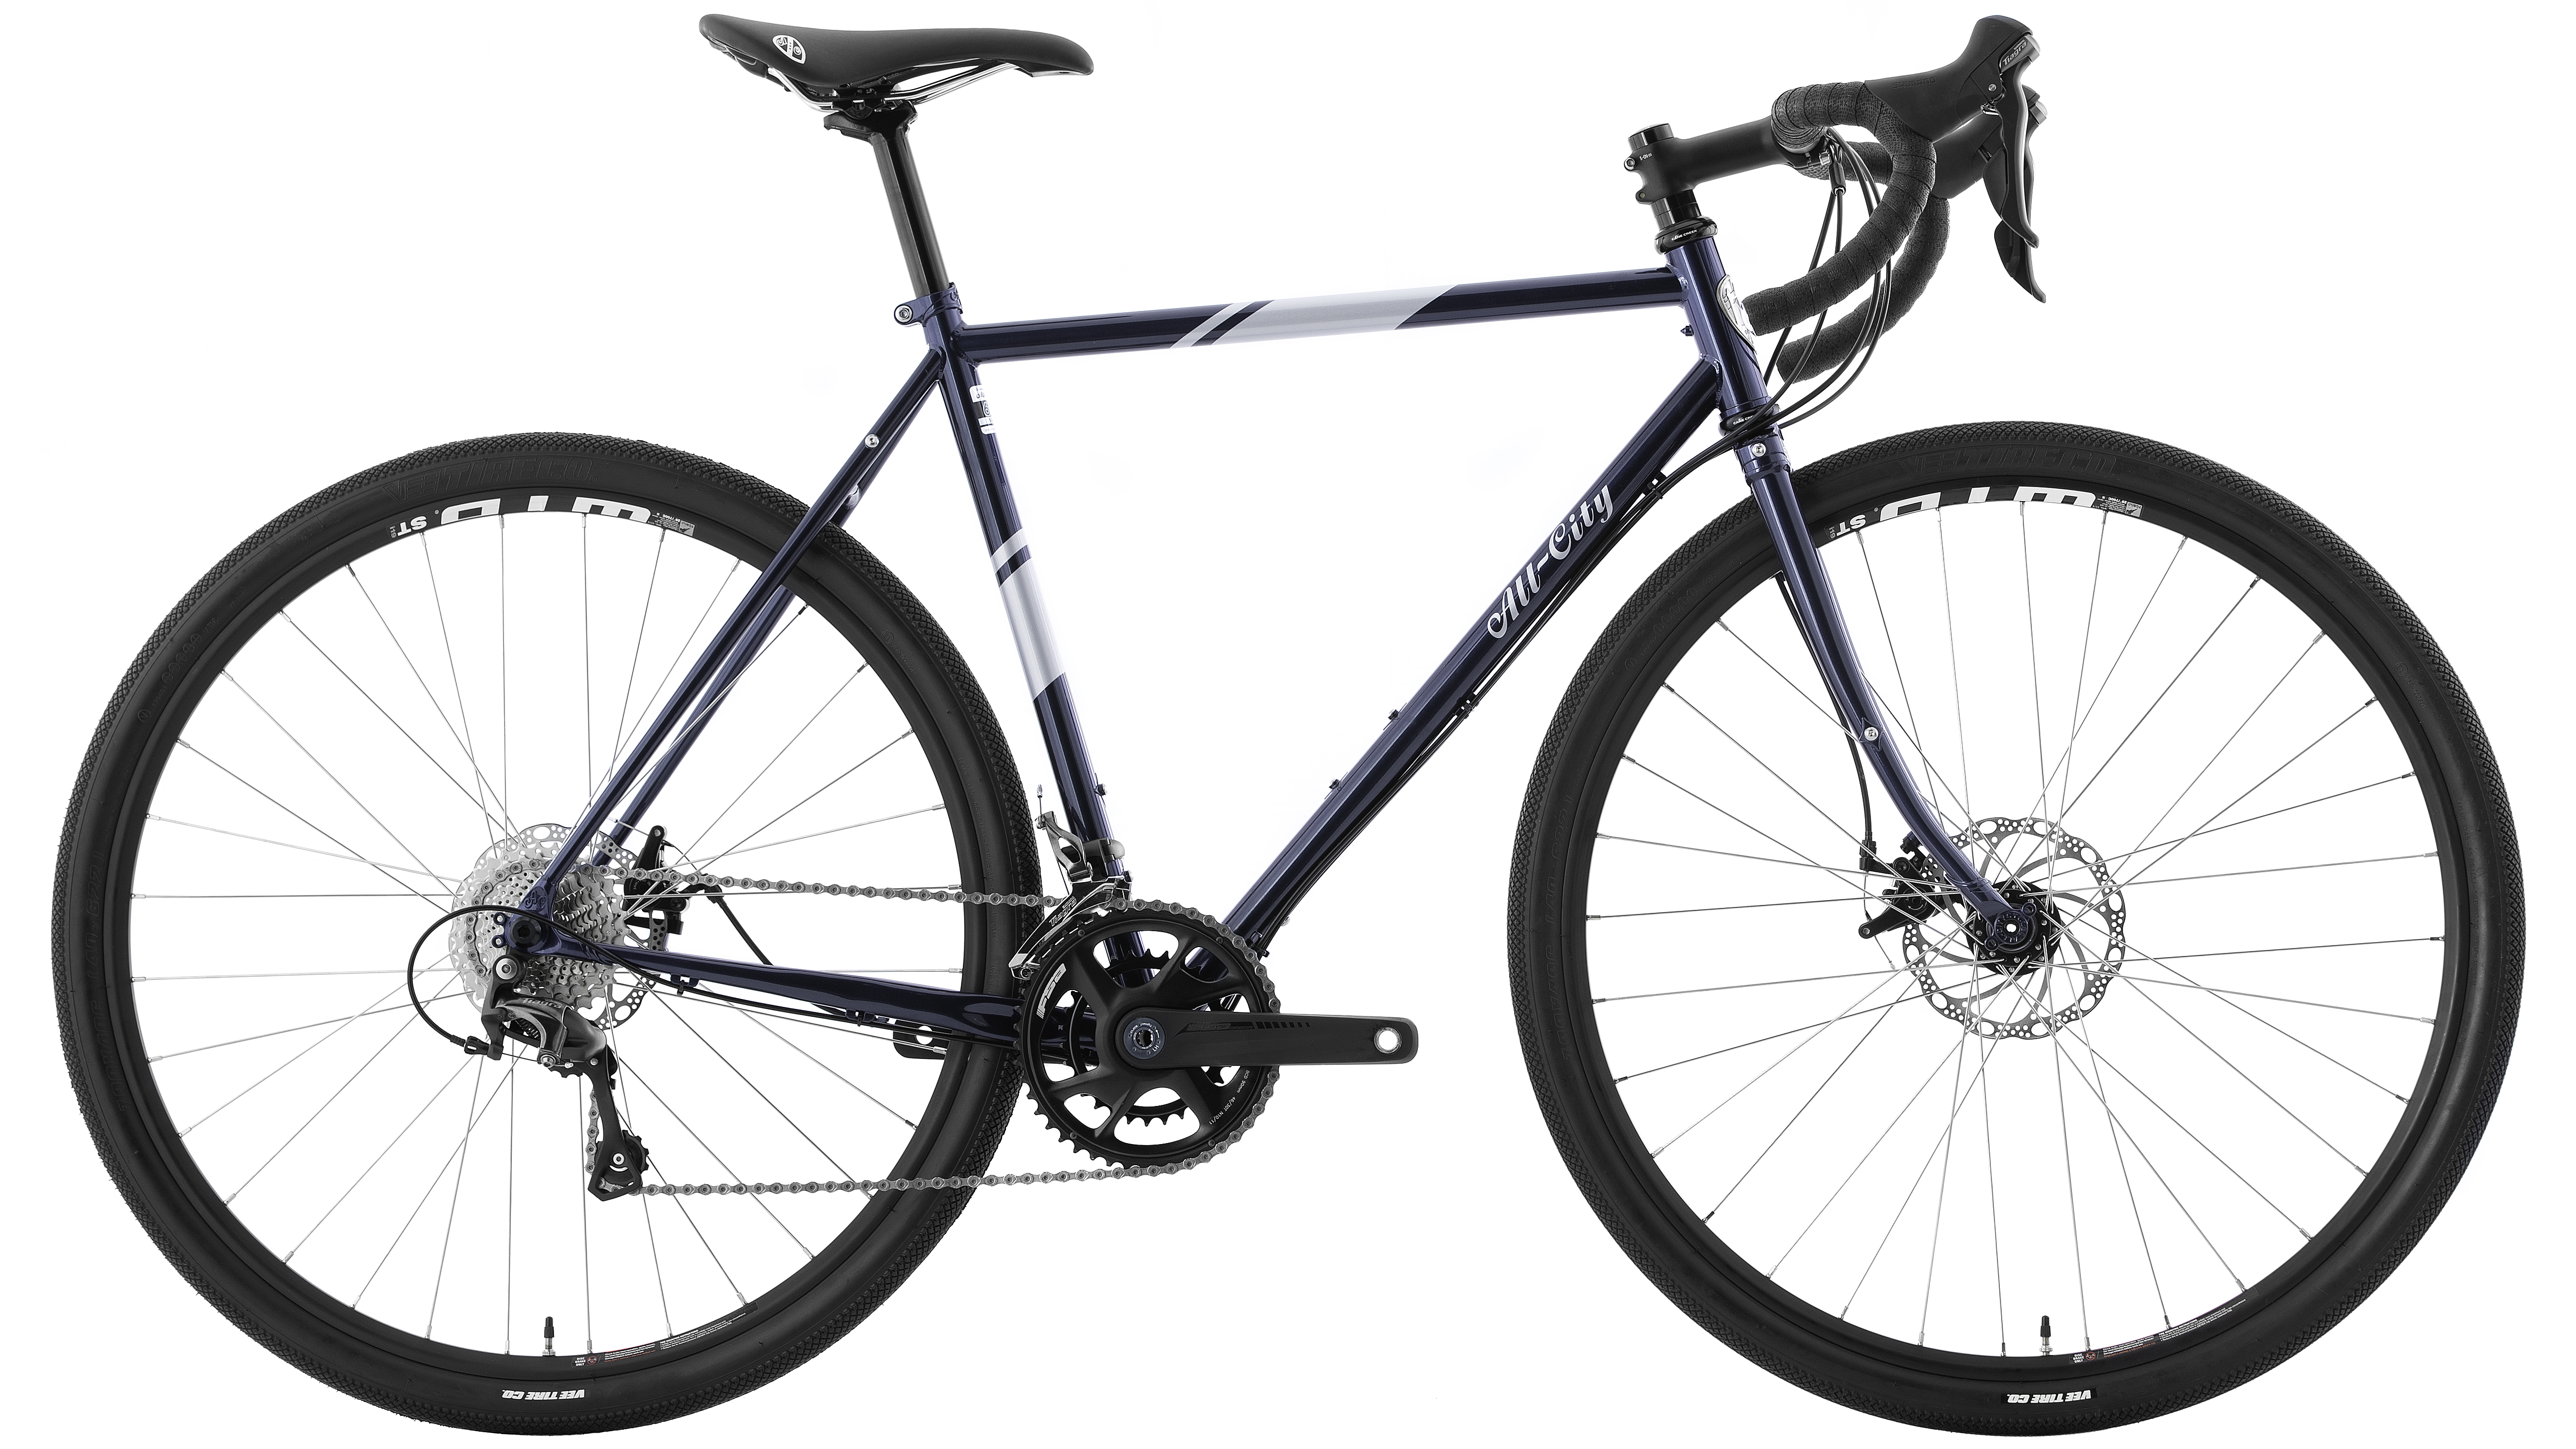 One of the best entry level road bikes